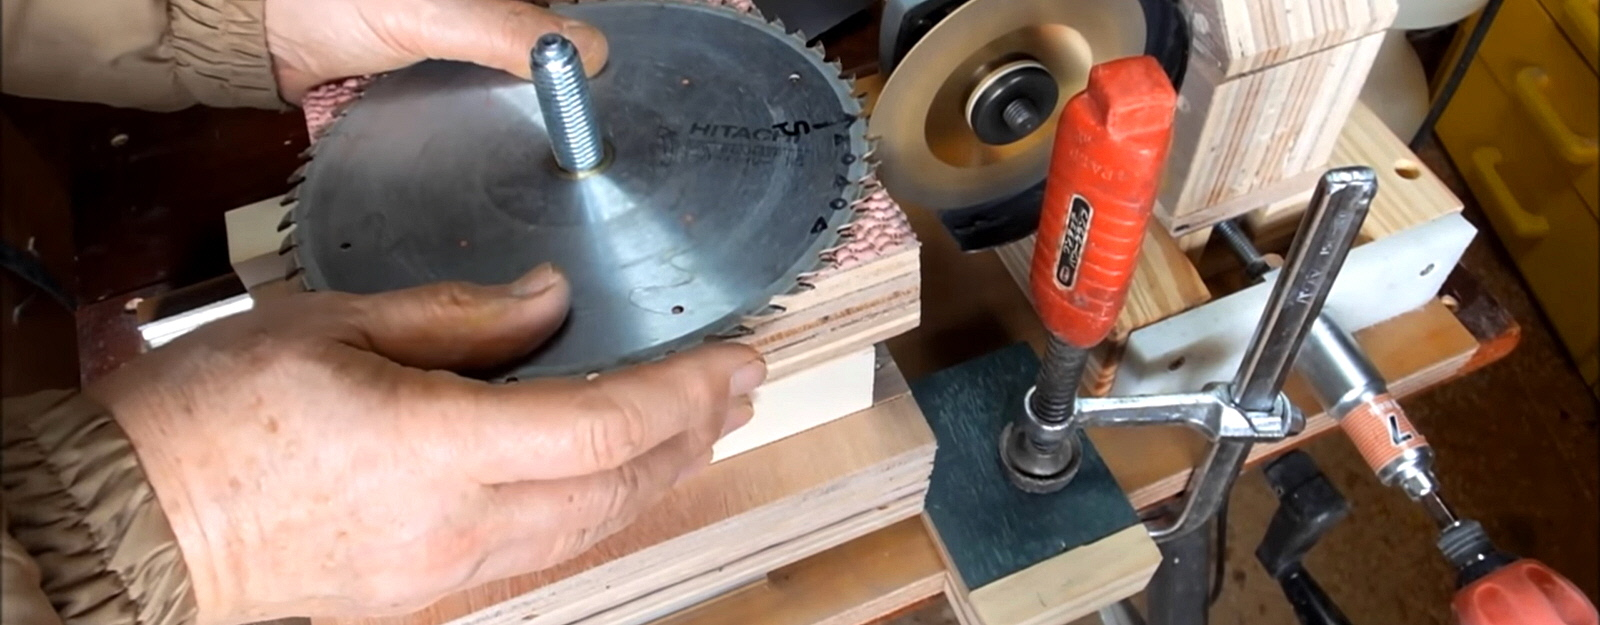 How to Make Your Own Saw Blade Sharpening Jig - Core77